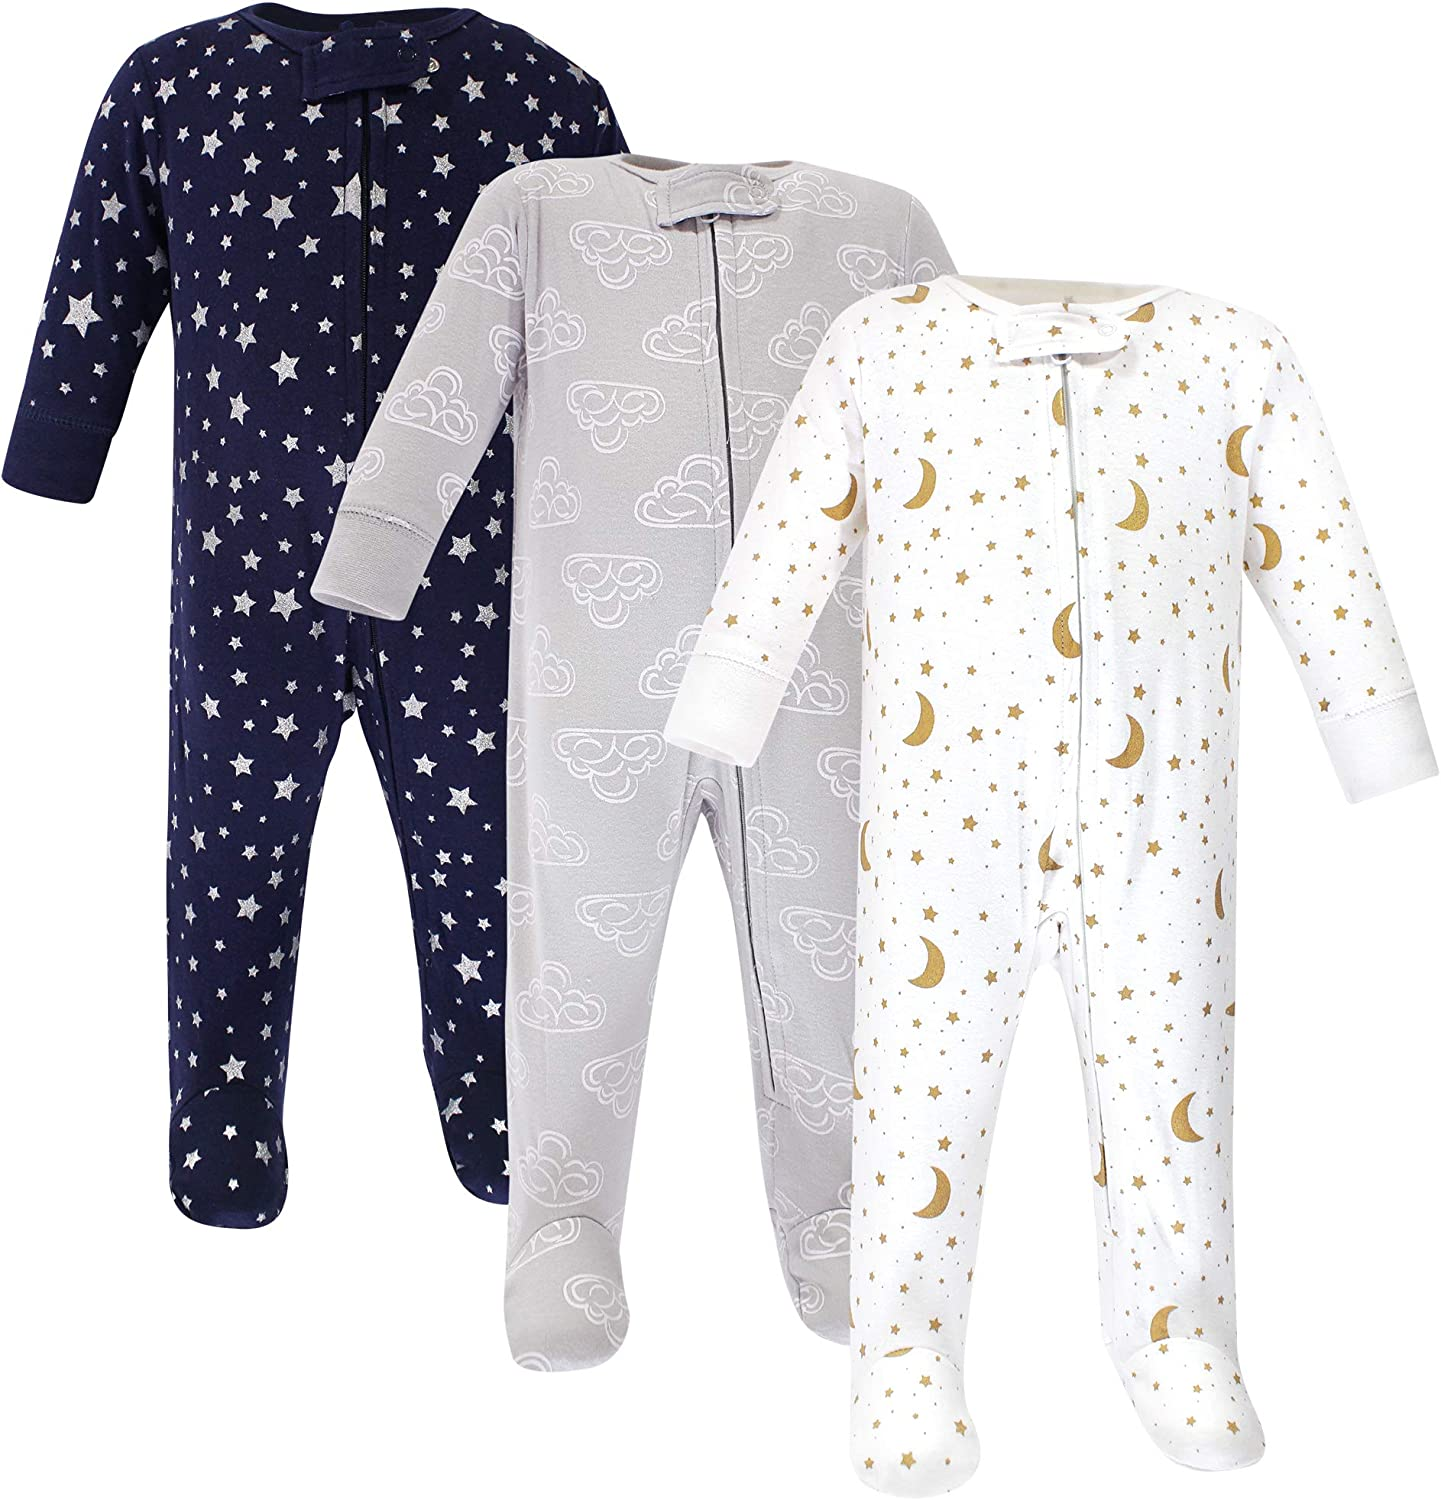 Hudson Baby Unisex Baby Cotton Sleep and Play: Clothing